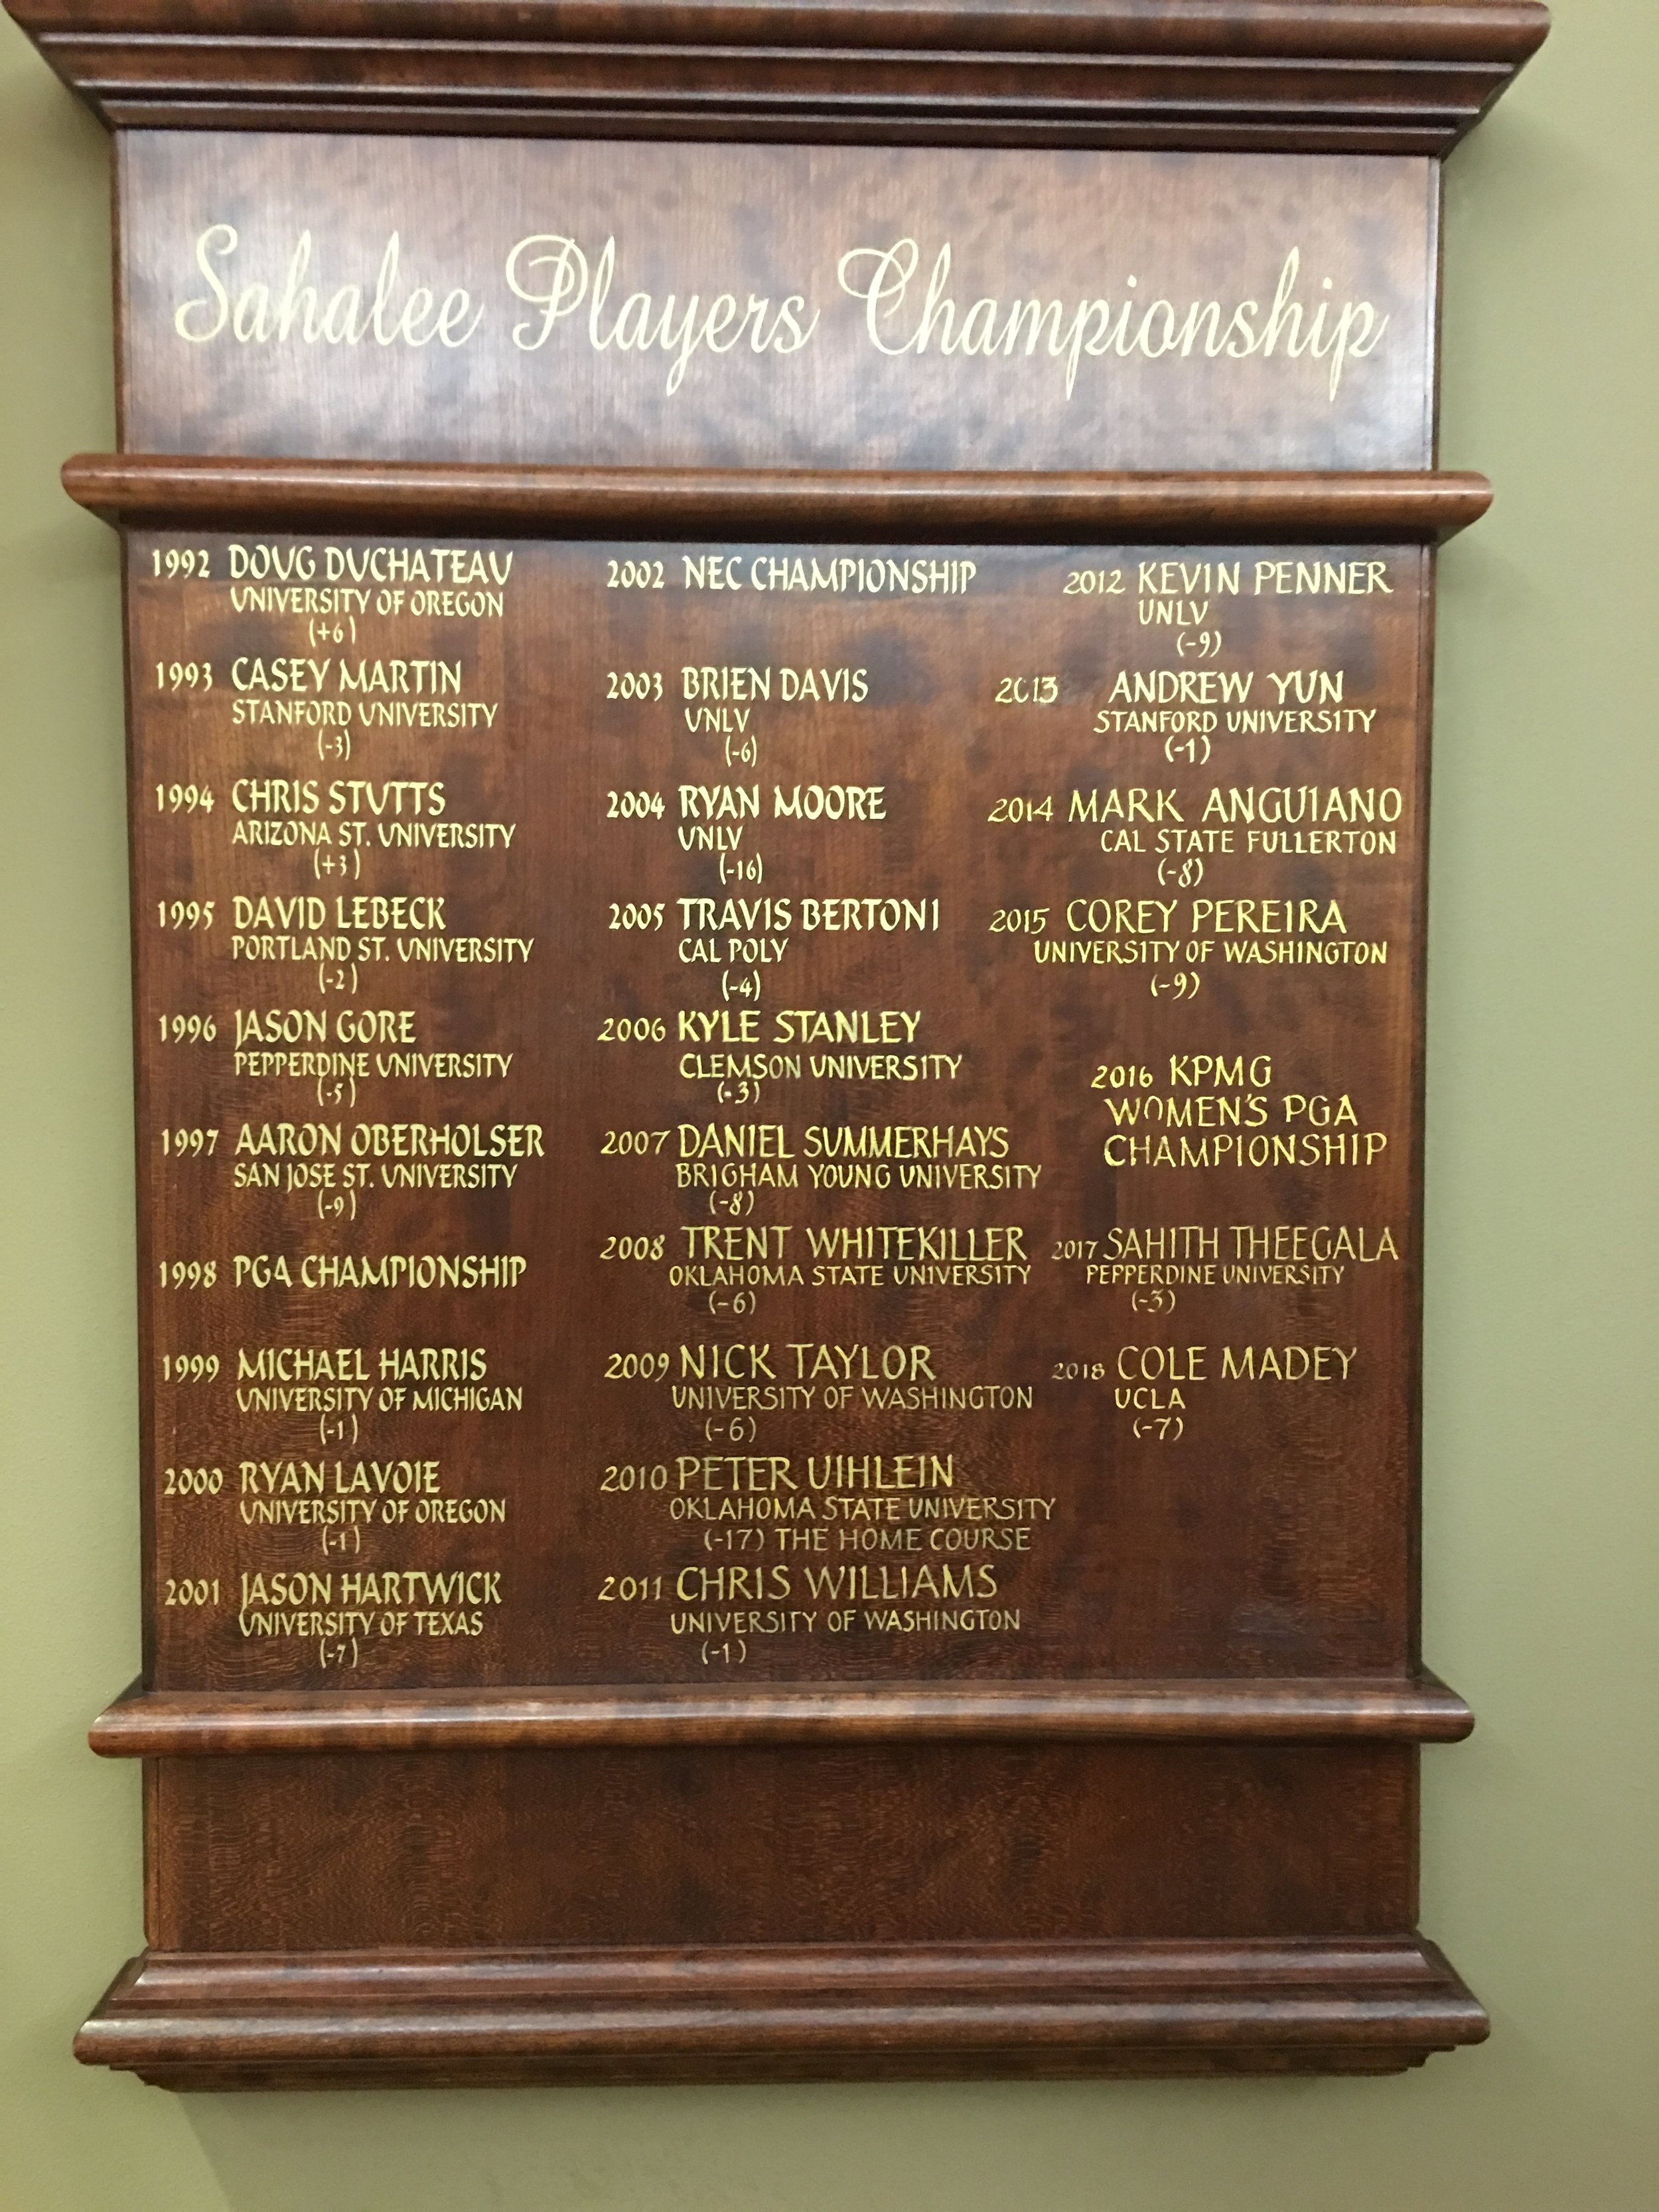 Birthplace of Champions - Sahalee Players Championship Perpetual Champions Plaque…. located in the Awards Hall of Sahalee Country Club